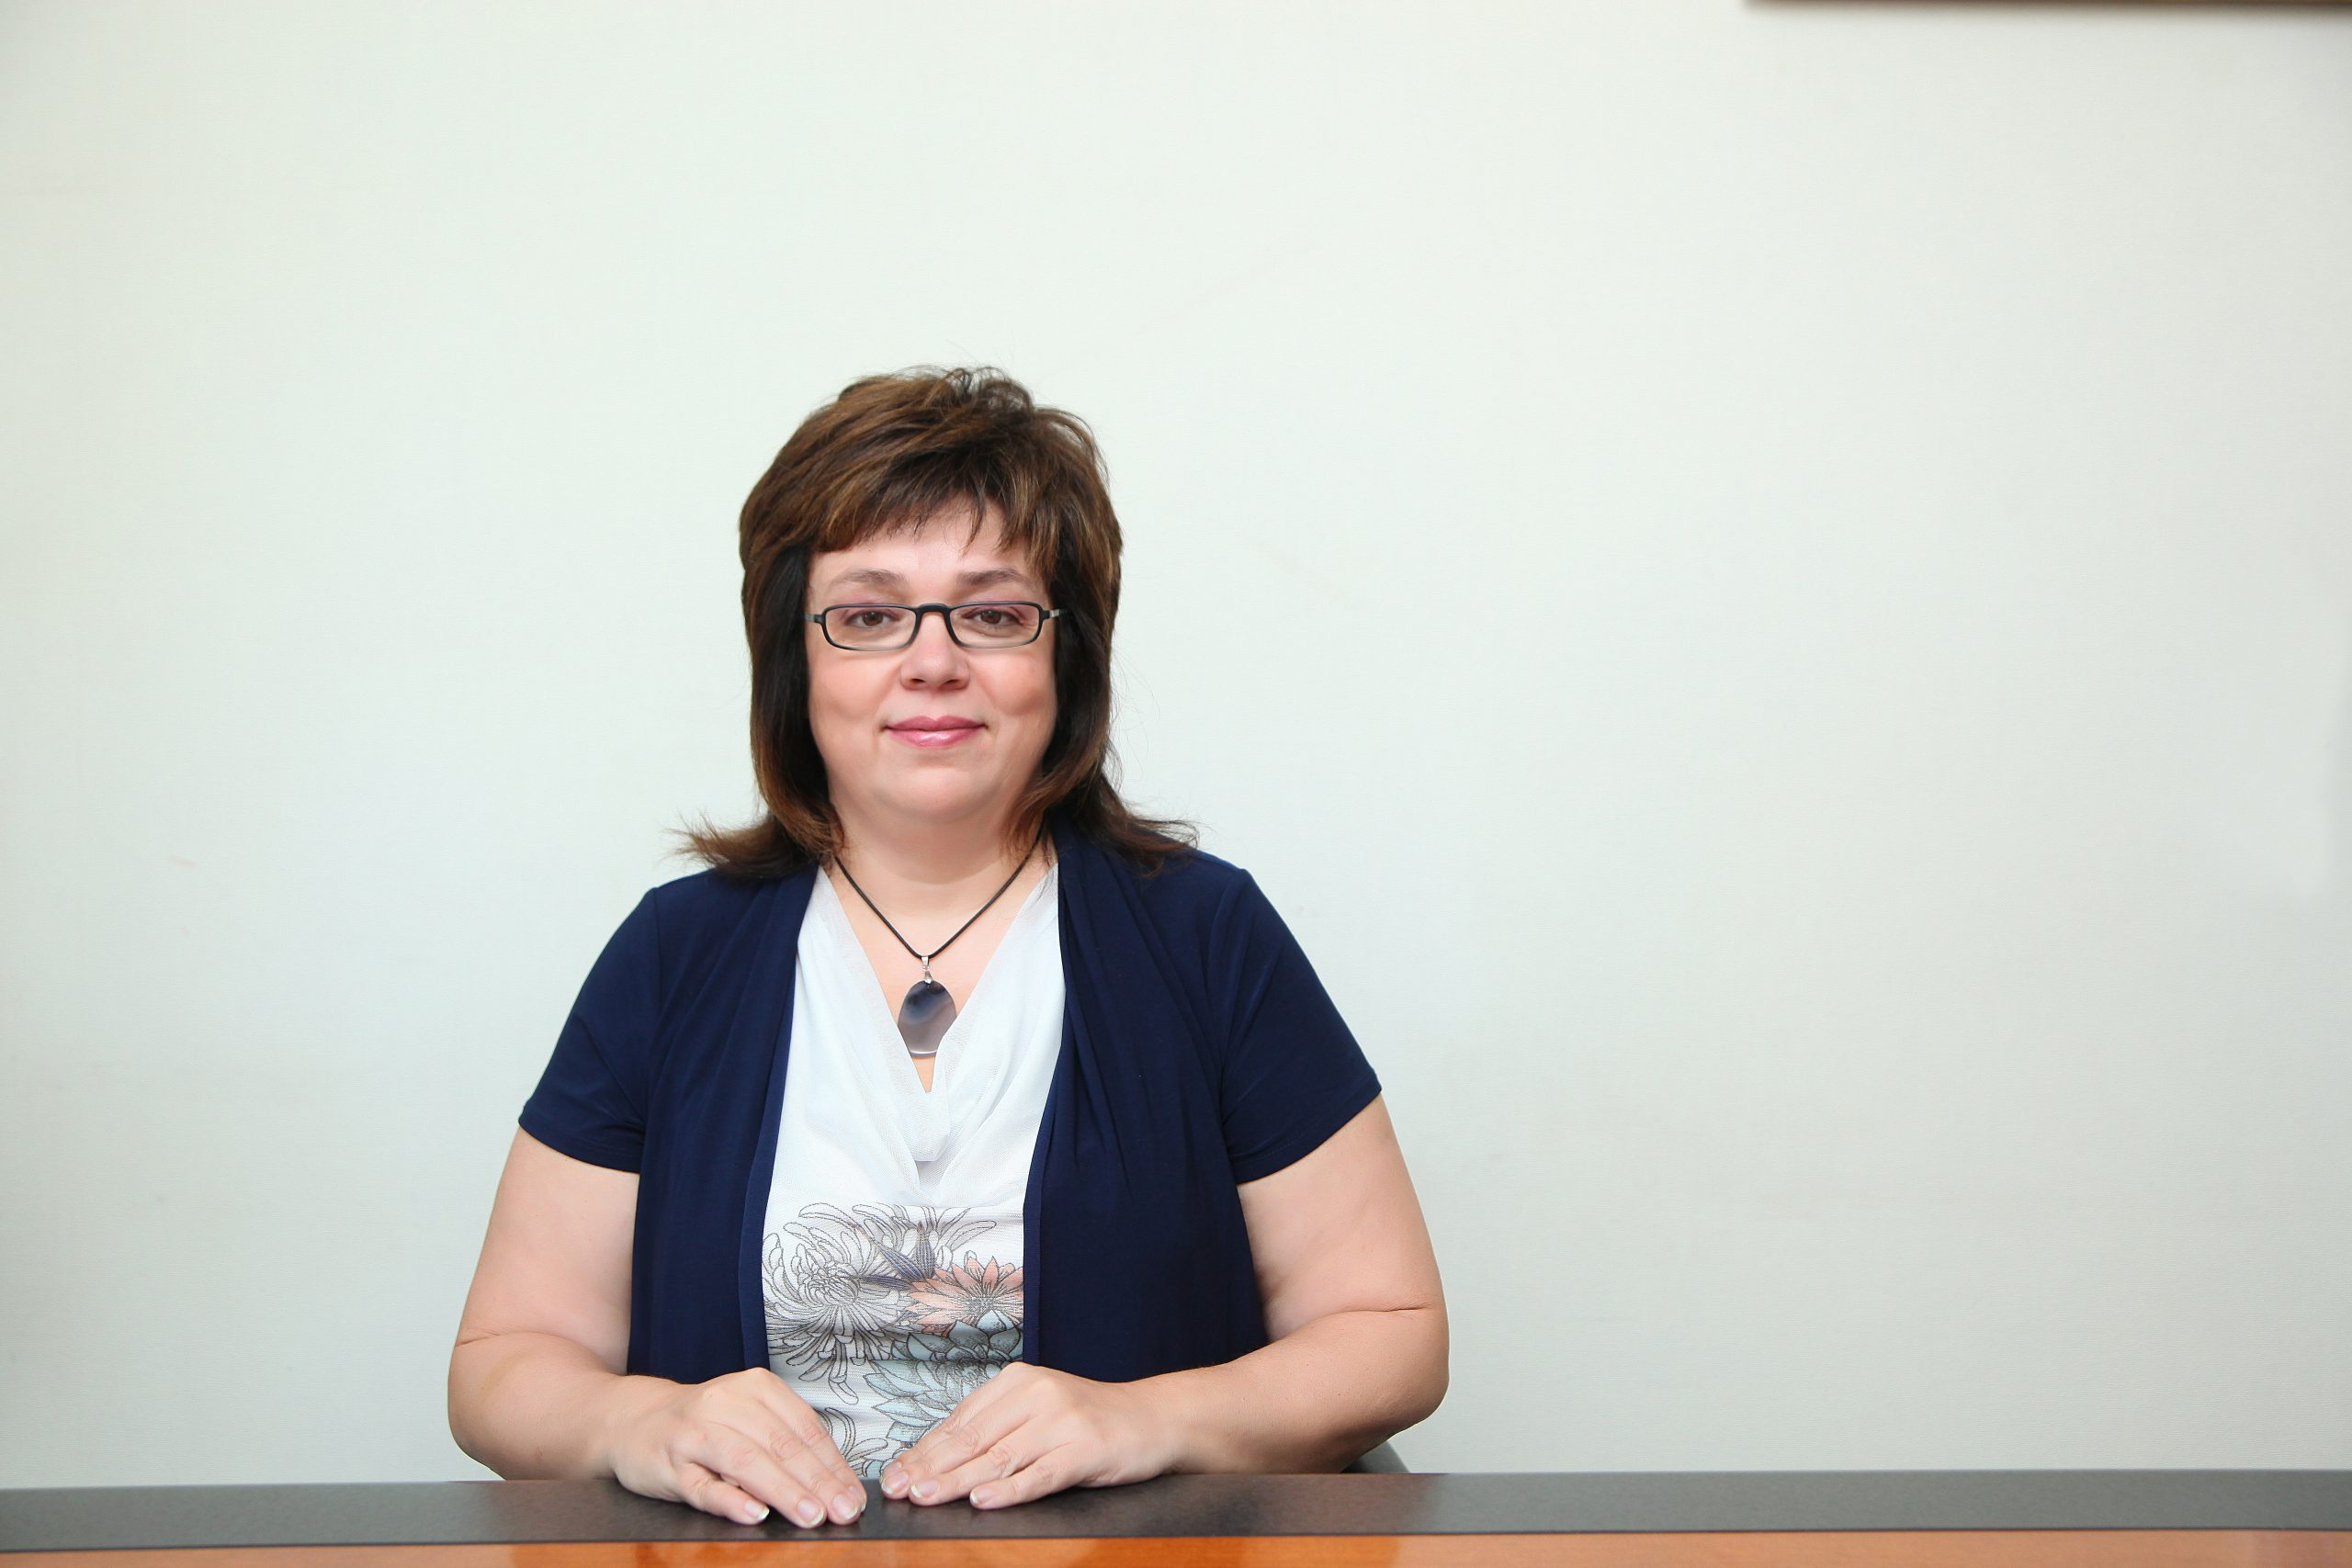 How Ukraine builds inclusive education: we invite you to listen to Inna Sergienko's speech during the Second International Practical Conference on Autism